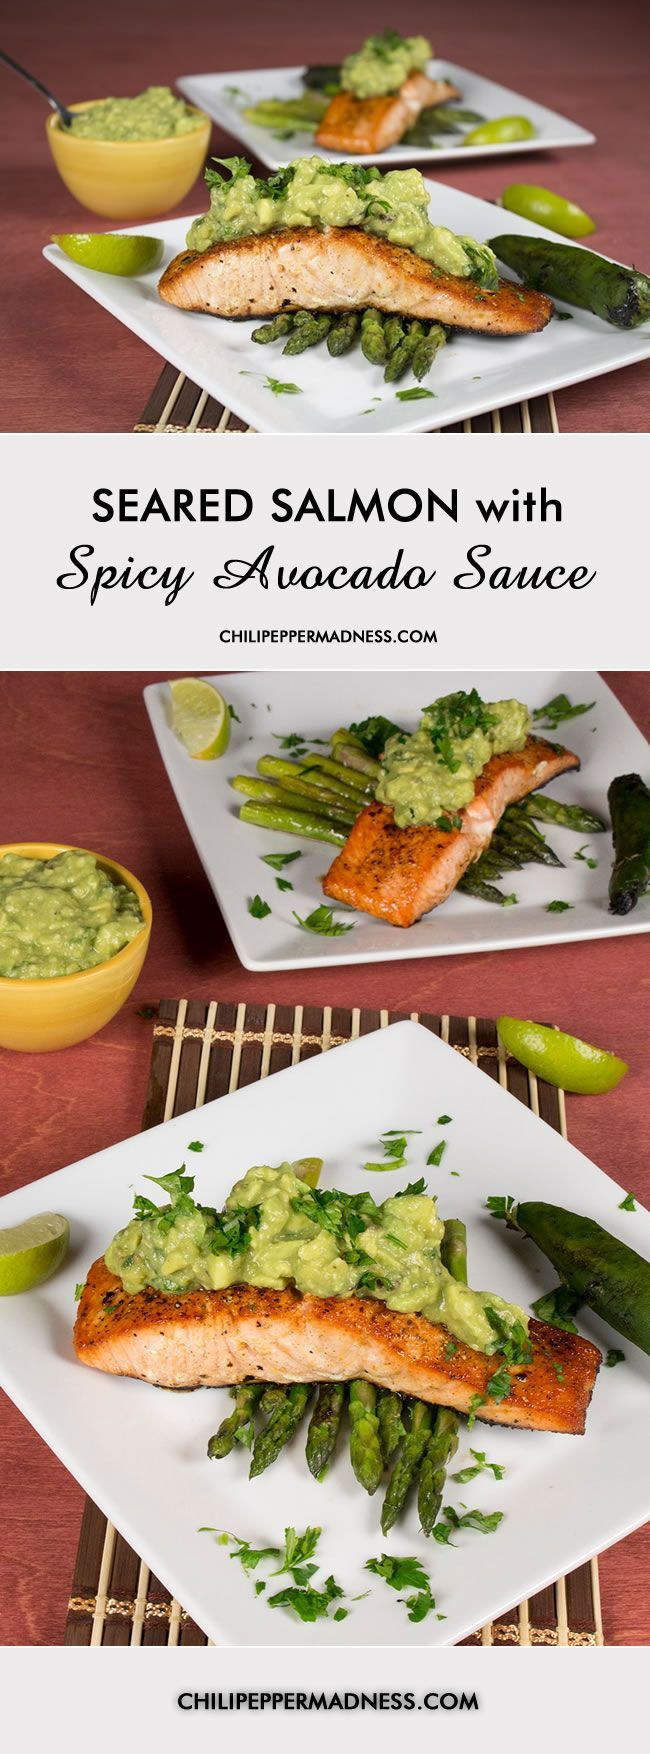 Seared Salmon with Spicy Avocado Sauce from ChiliPepperMadness.com